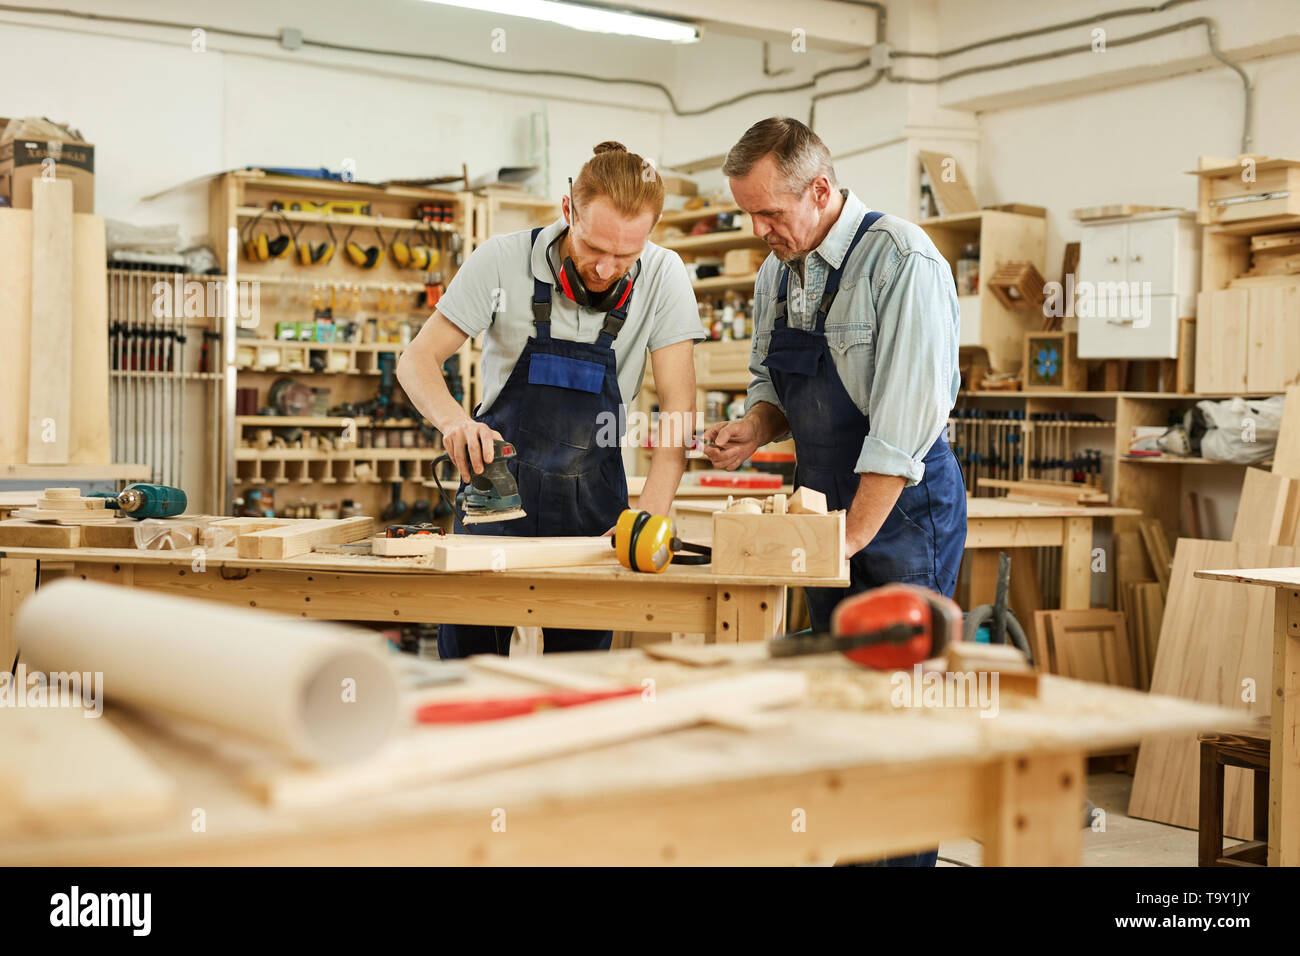 Portrait of senior carpenter teaching apprentice  while working  in joinery workshop, copy space - Stock Image